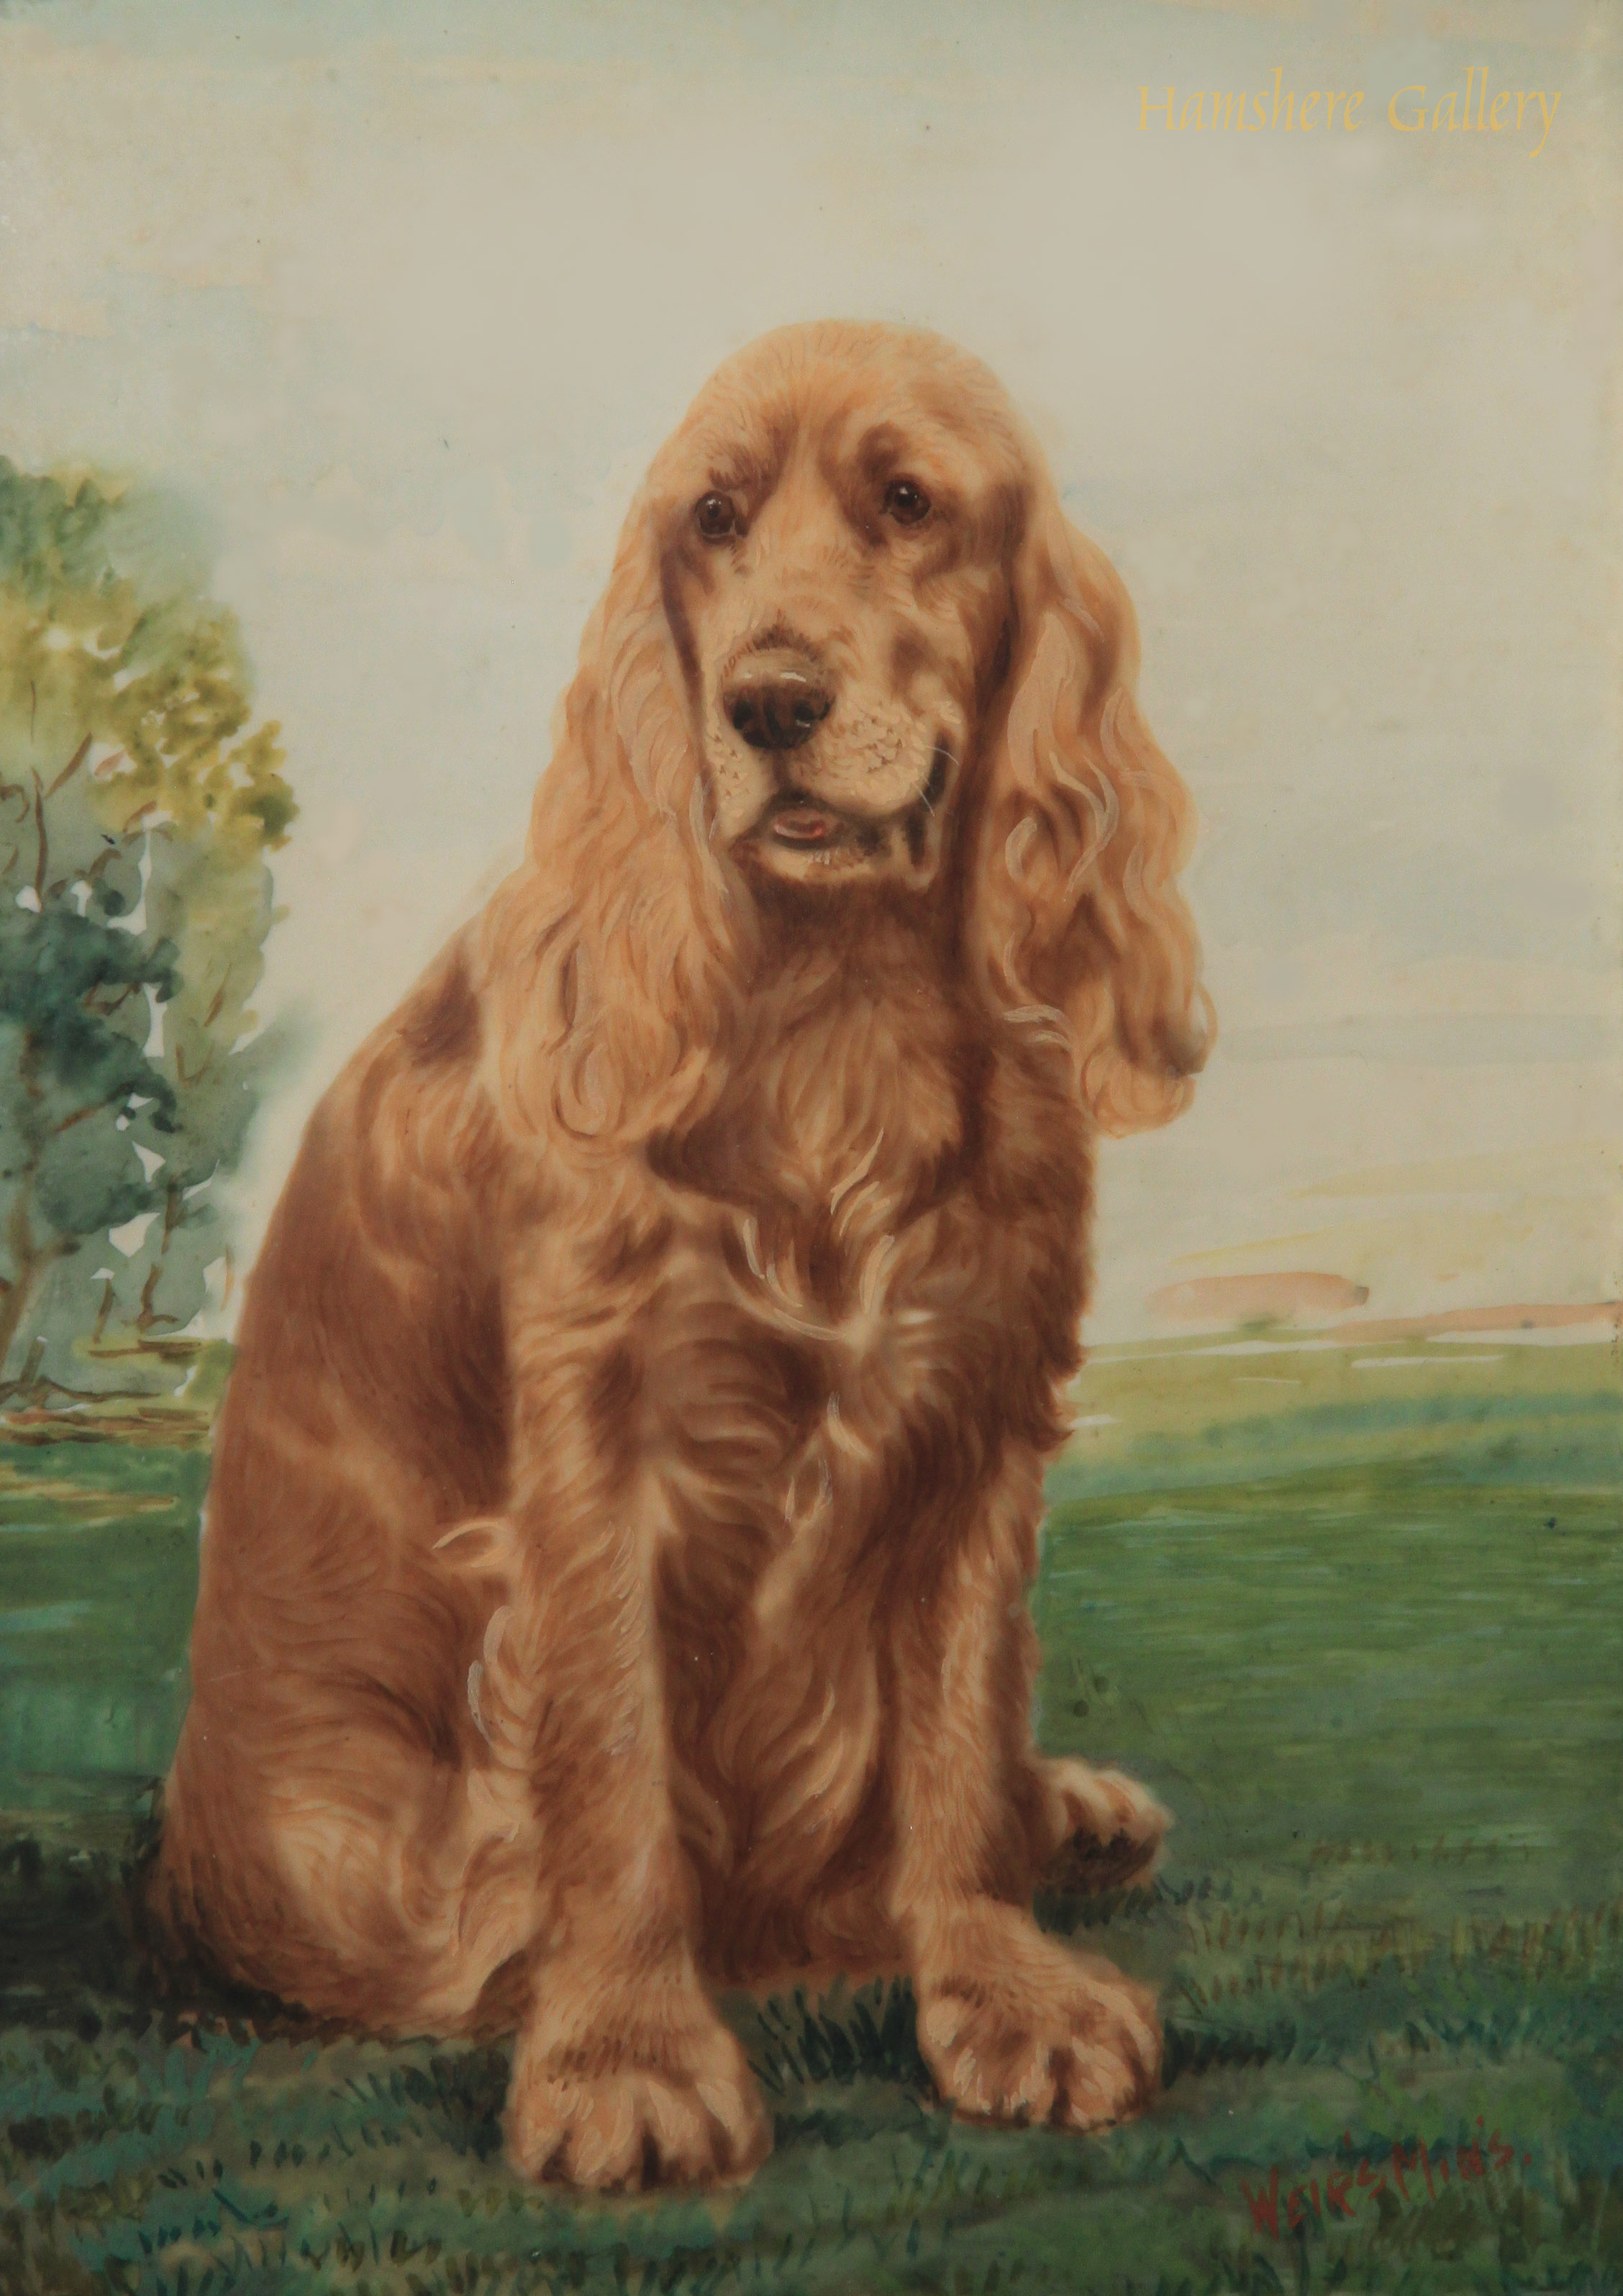 Click to see full size: seated Cocker Spaniel by Michael Weirs- seated Cocker Spaniel by Michael Weirs